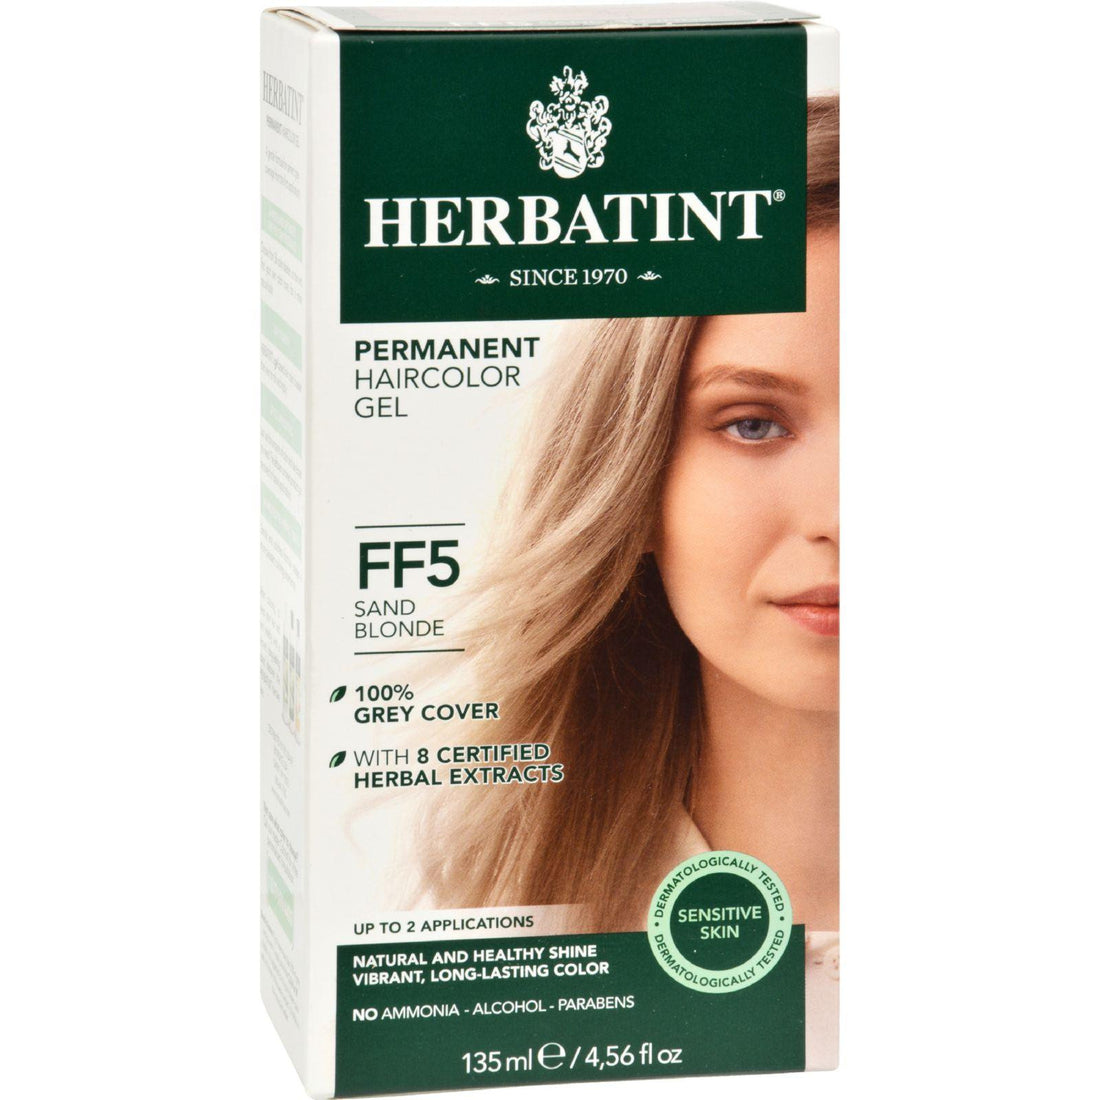 Mother Mantis: Herbatint Permanent Herbal Haircolour Gel Ff5 Sand Blonde - 1 Kit Herbatint